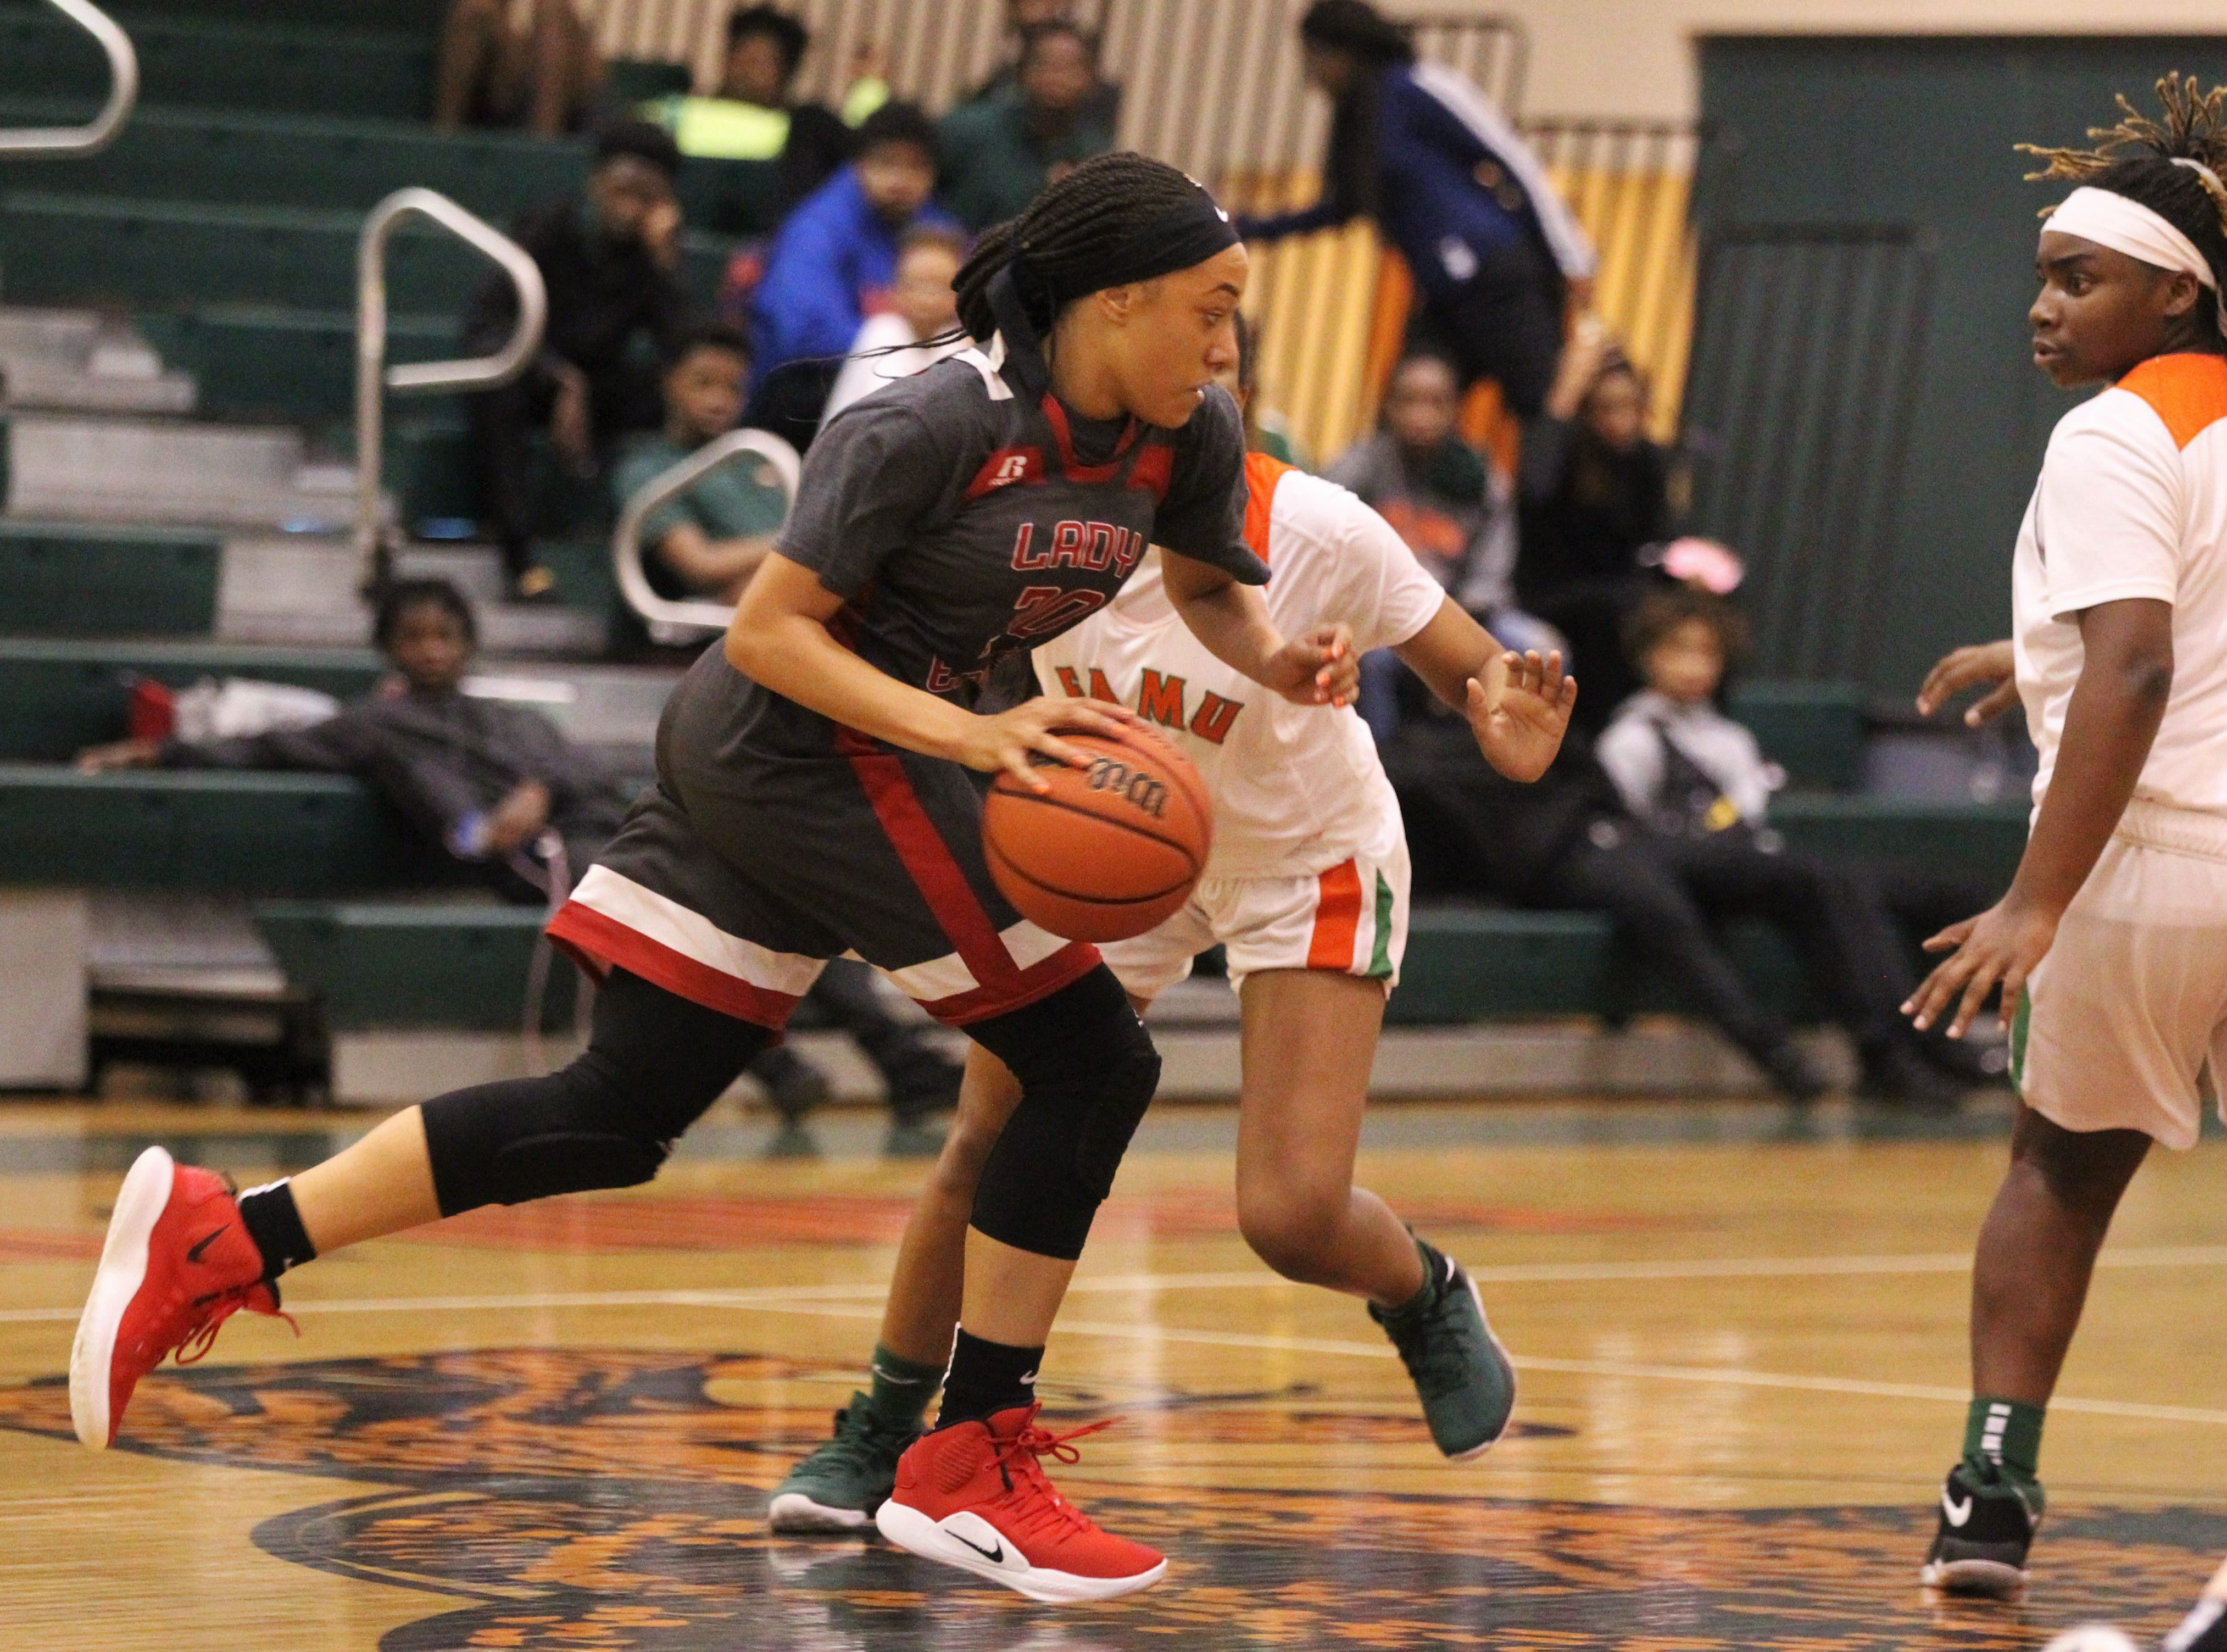 NFC senior Caylan Jones dribles up the court against press defense as FAMU DRS' girls basketball team beat NFC 59-41 for a District 1-3A title on Jan. 7, 2019.